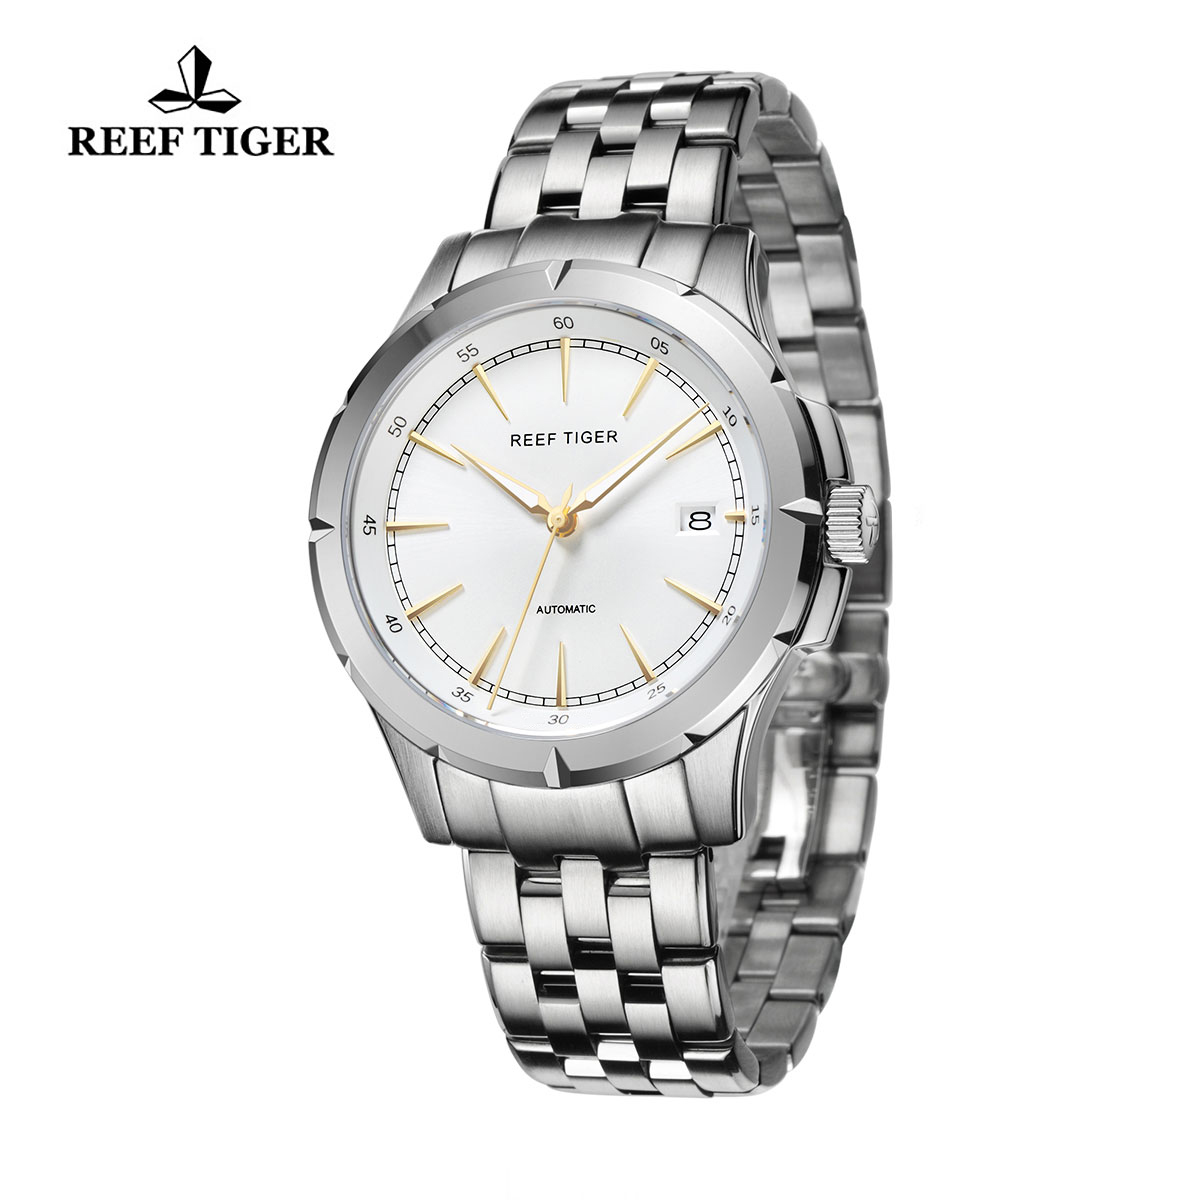 Reef Tiger Spirit Of Liberty Business Watch White Dial Full Stainless Steel RGA819-YWYG